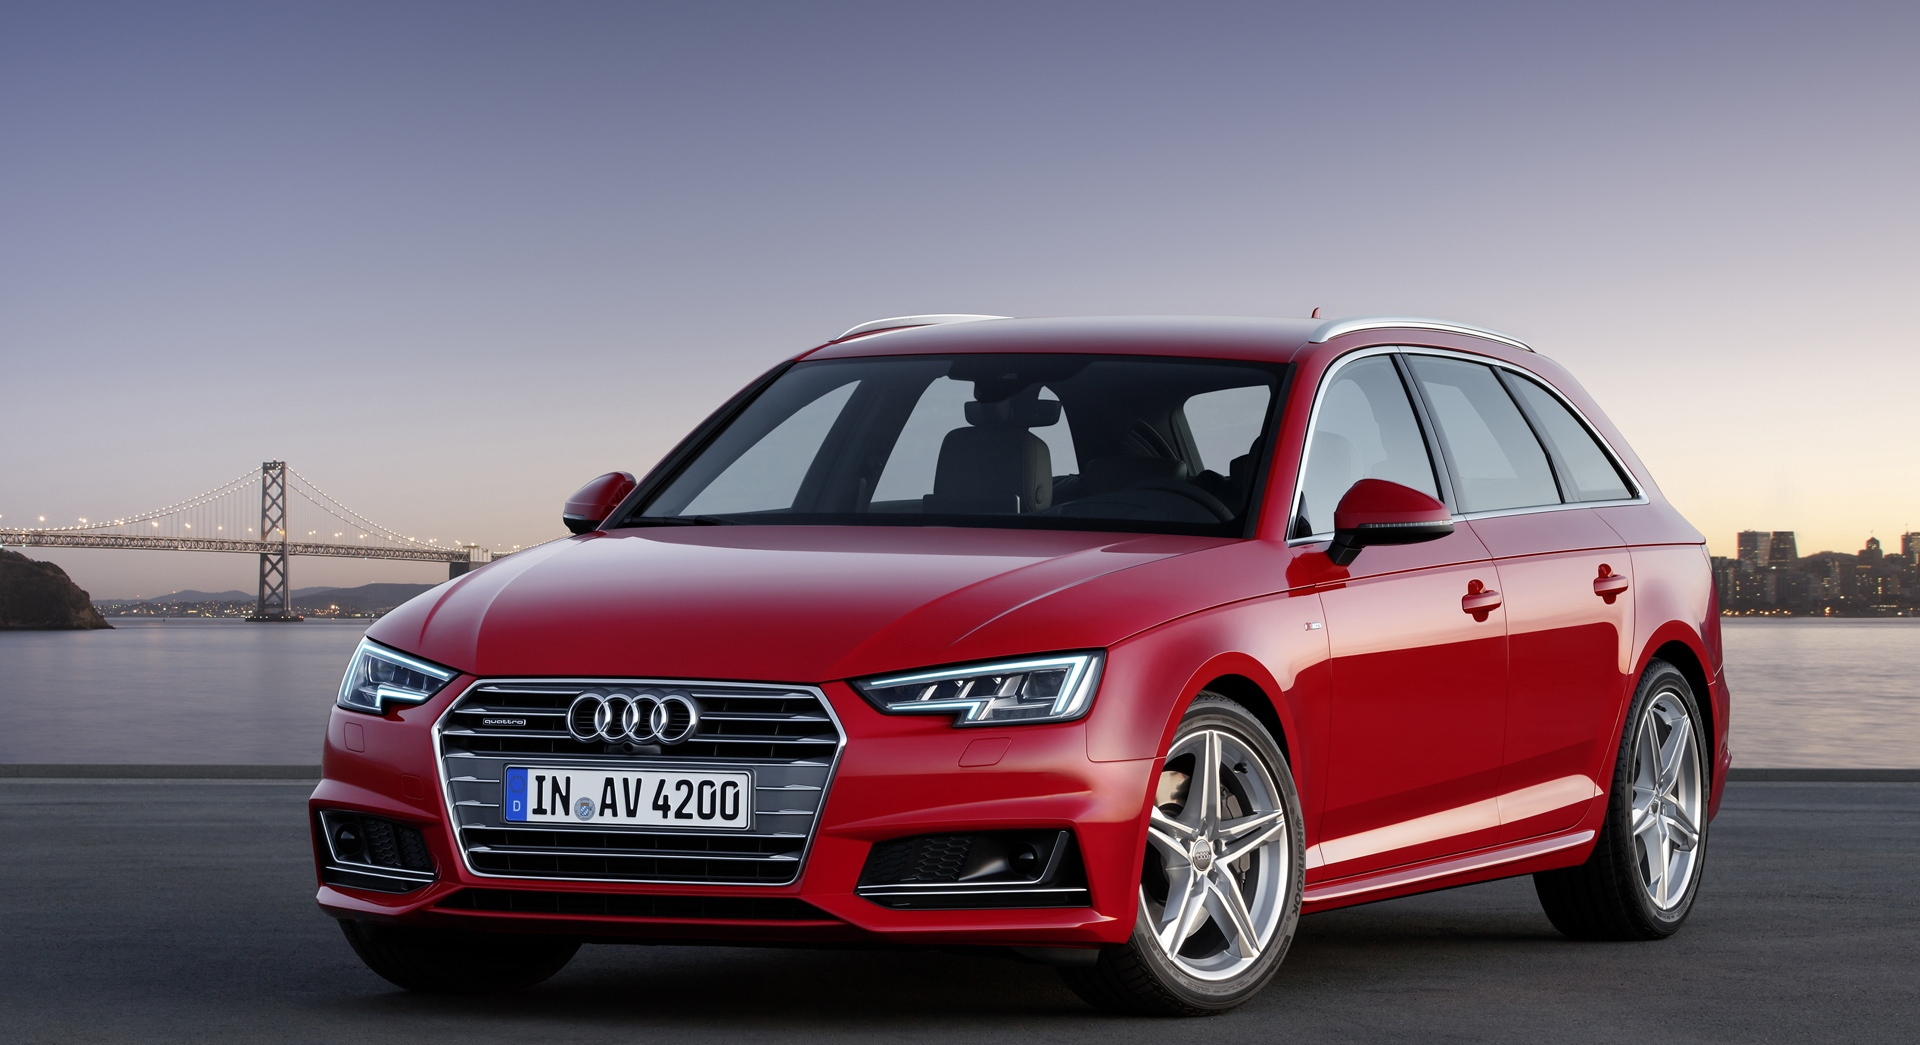 audi a4 avant red side